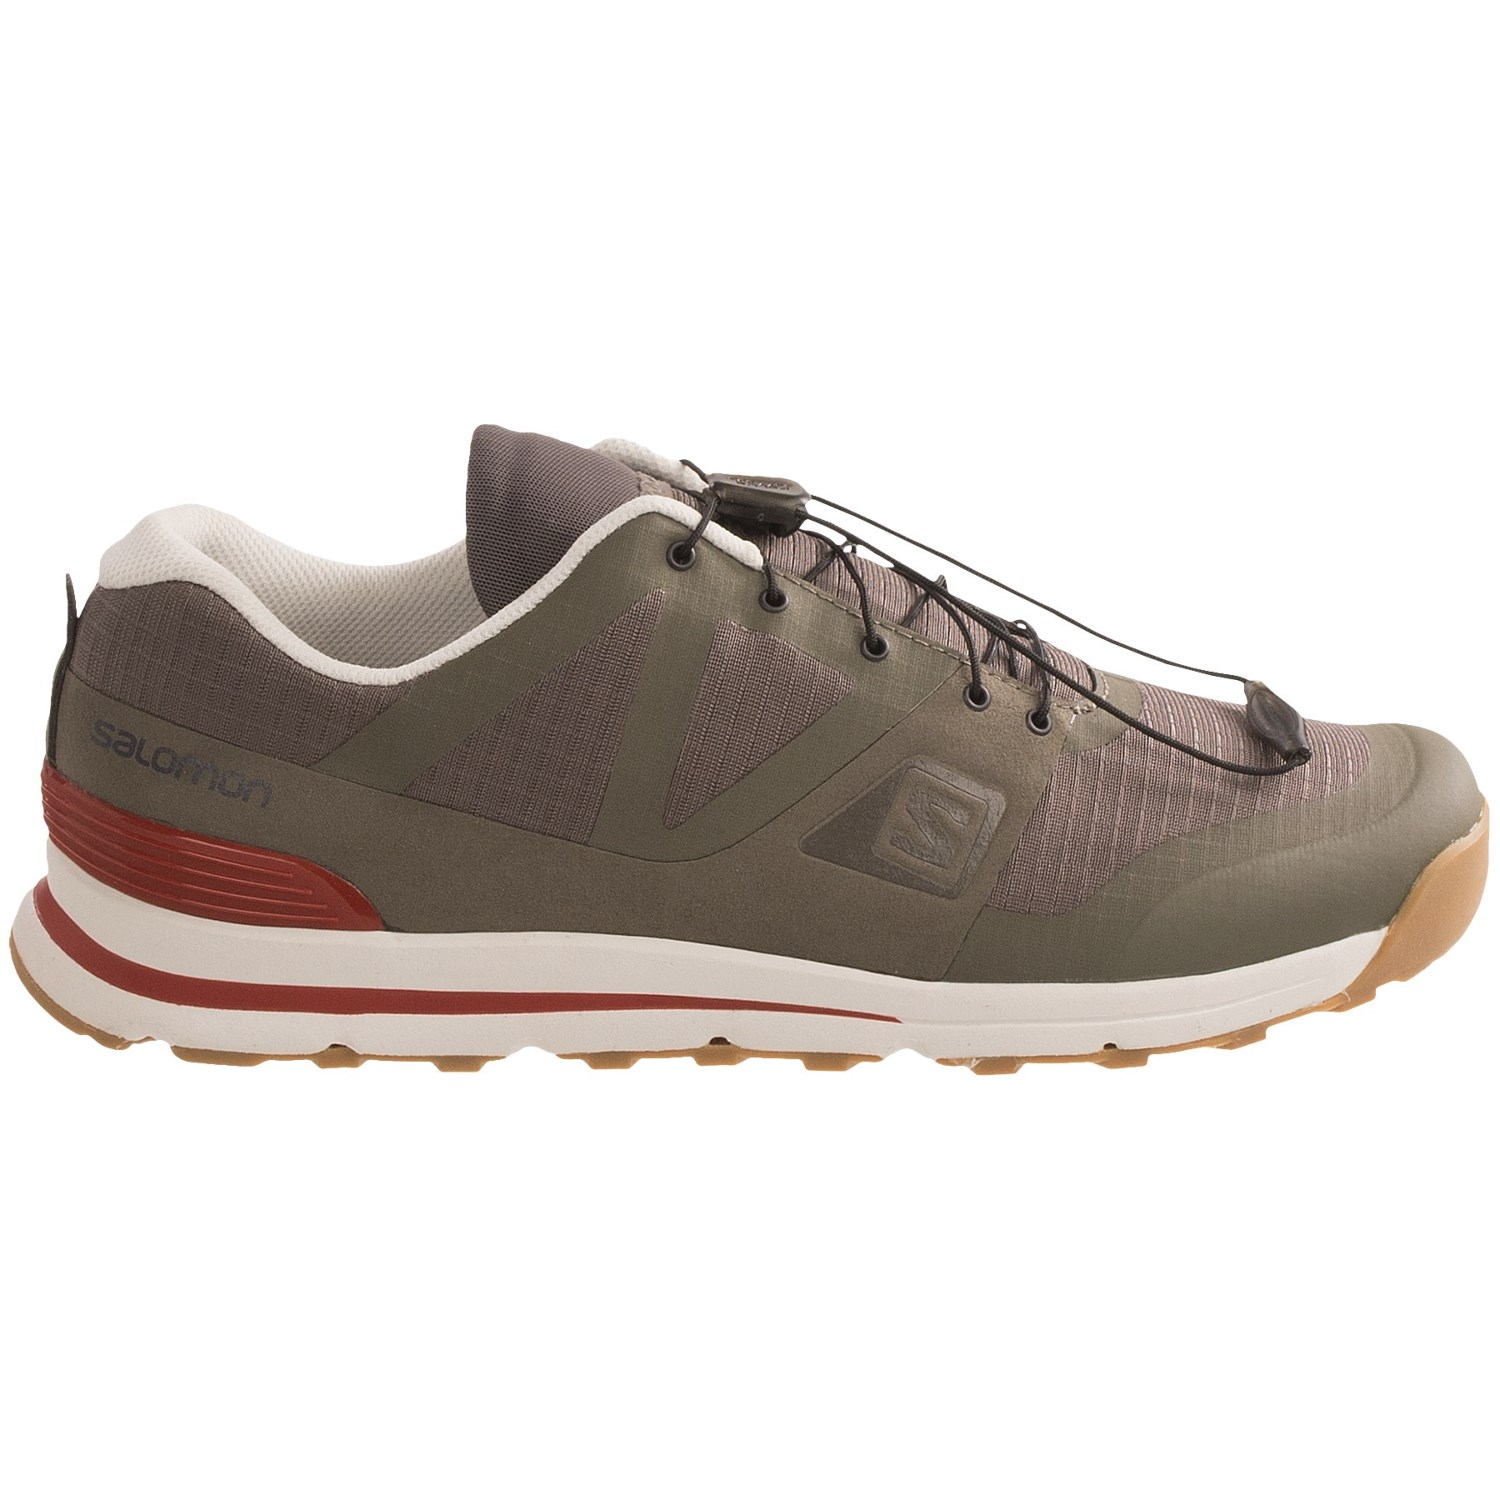 Salomon Outban Low Casual Shoes (For Men) 7239J